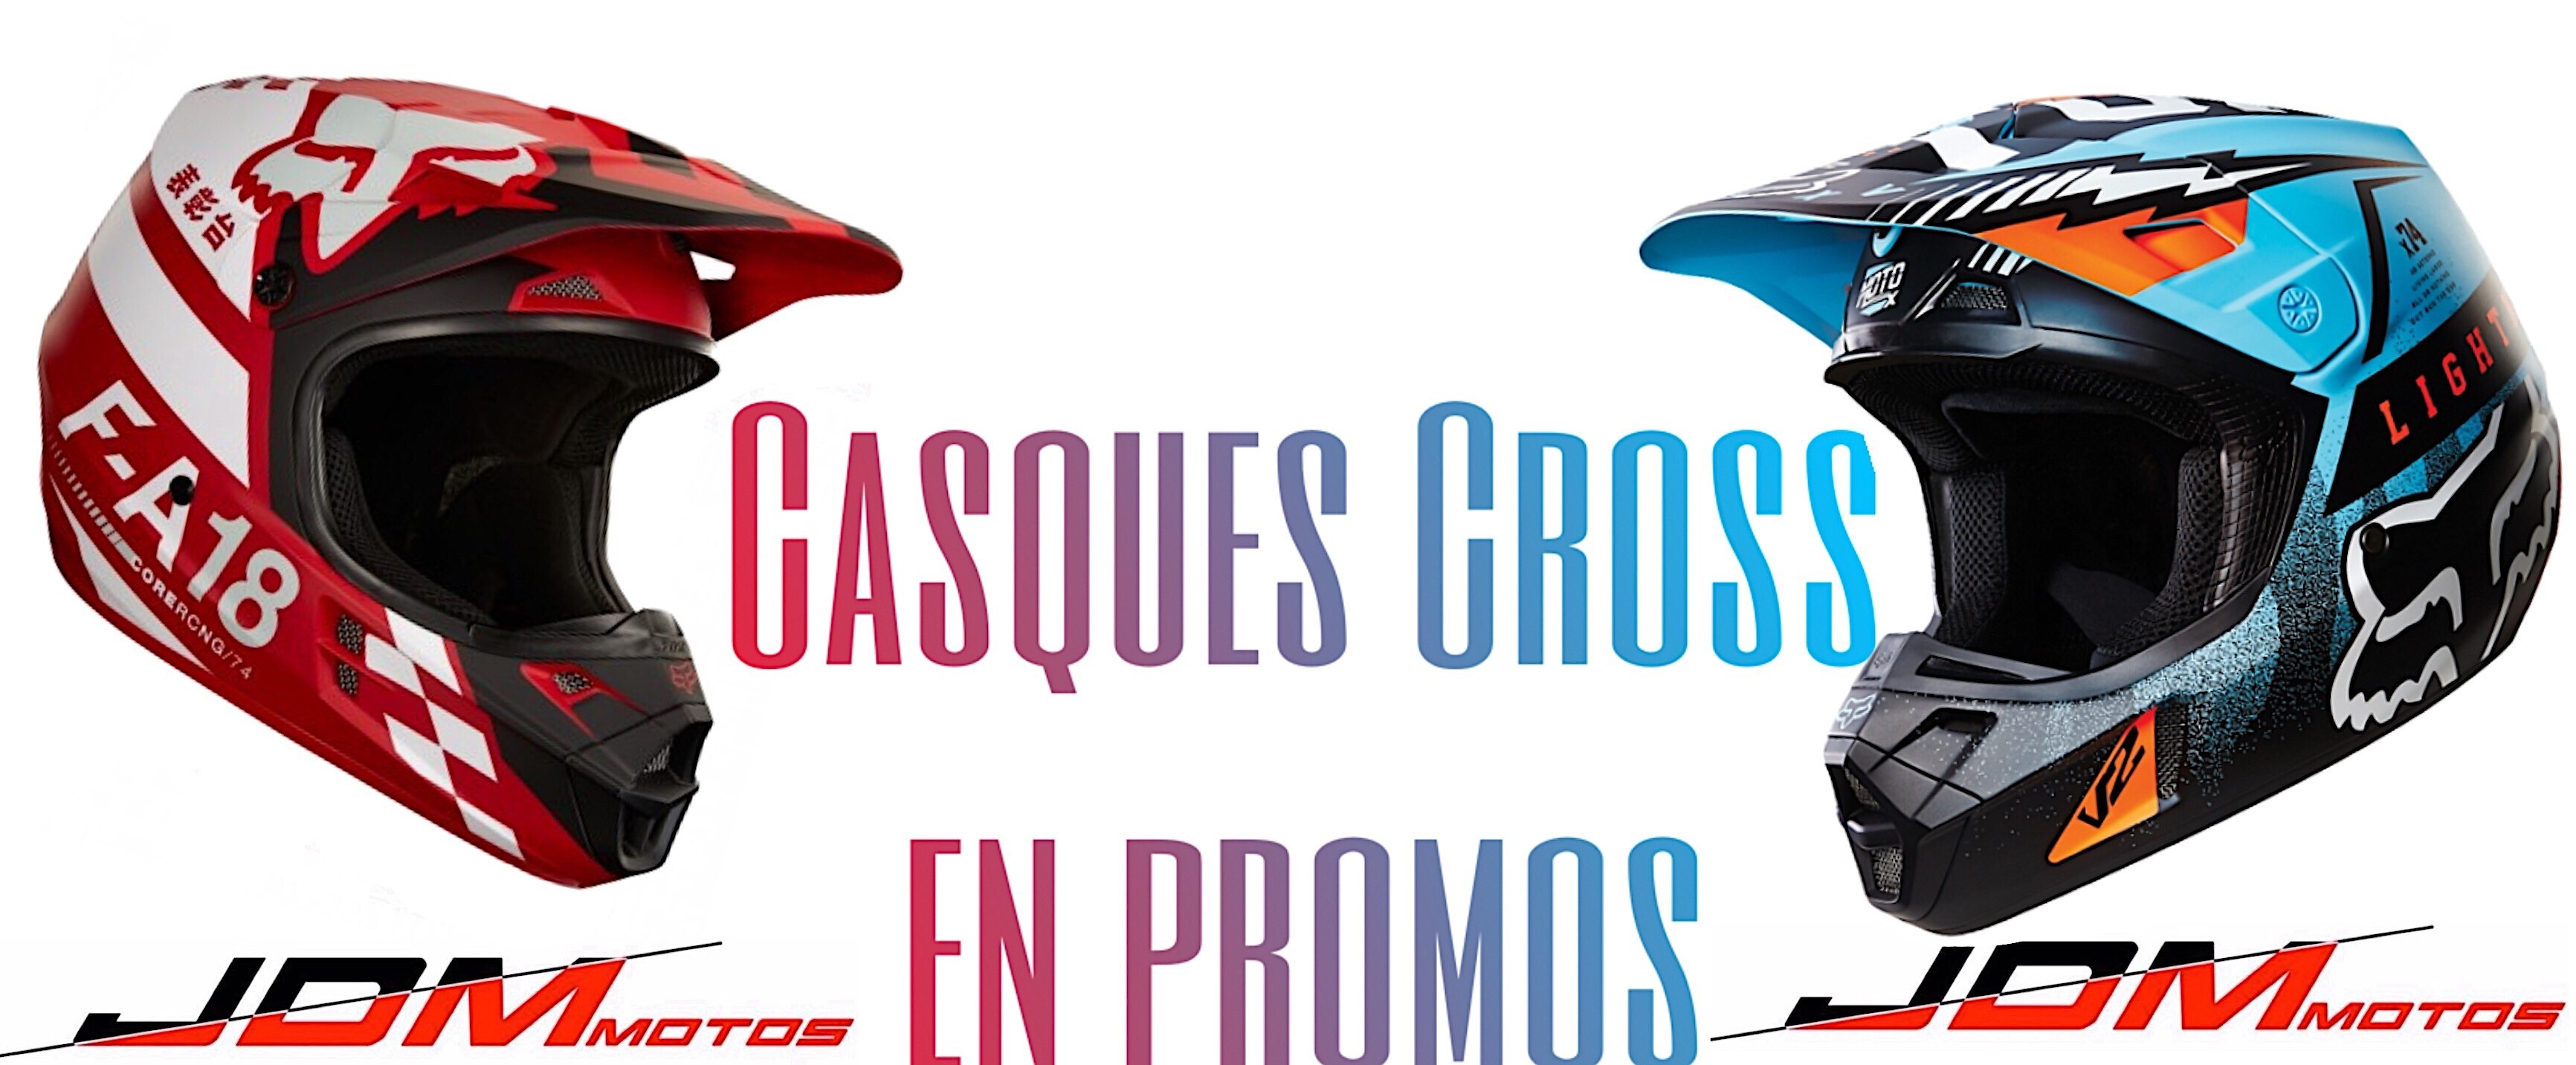 PROMOTION CASQUE CROSS